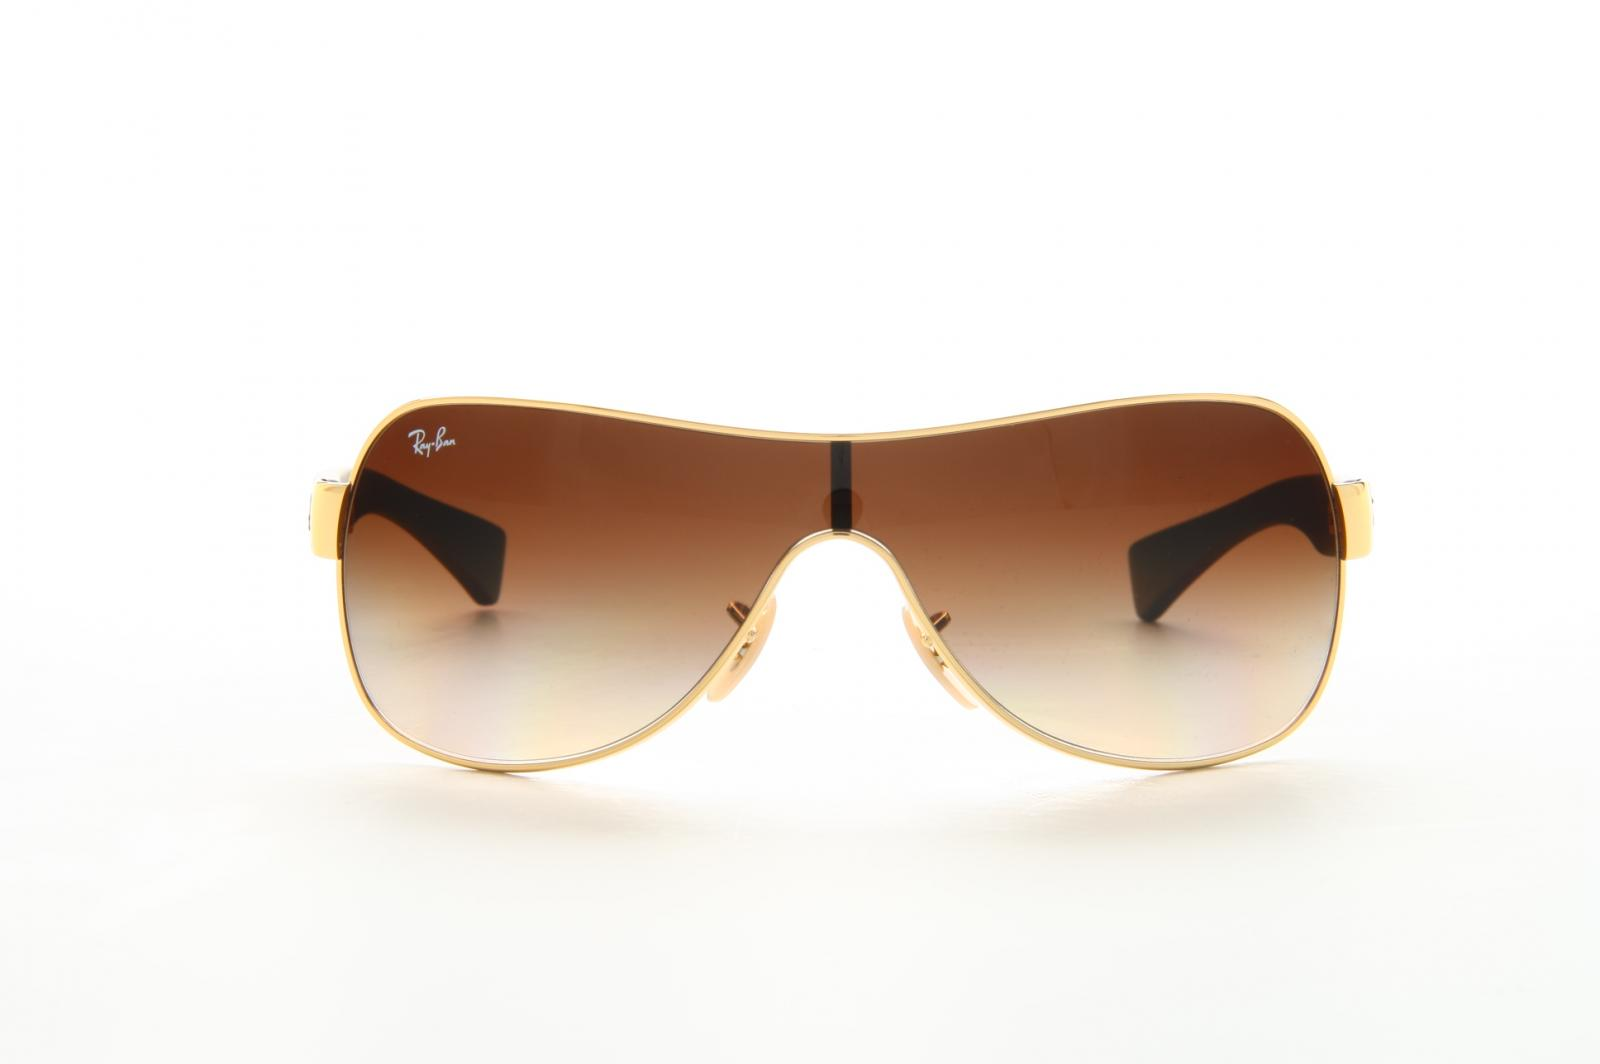 Ray Ban Aviators Gold Brown Smokey « Heritage Malta 951cfbe2ff9